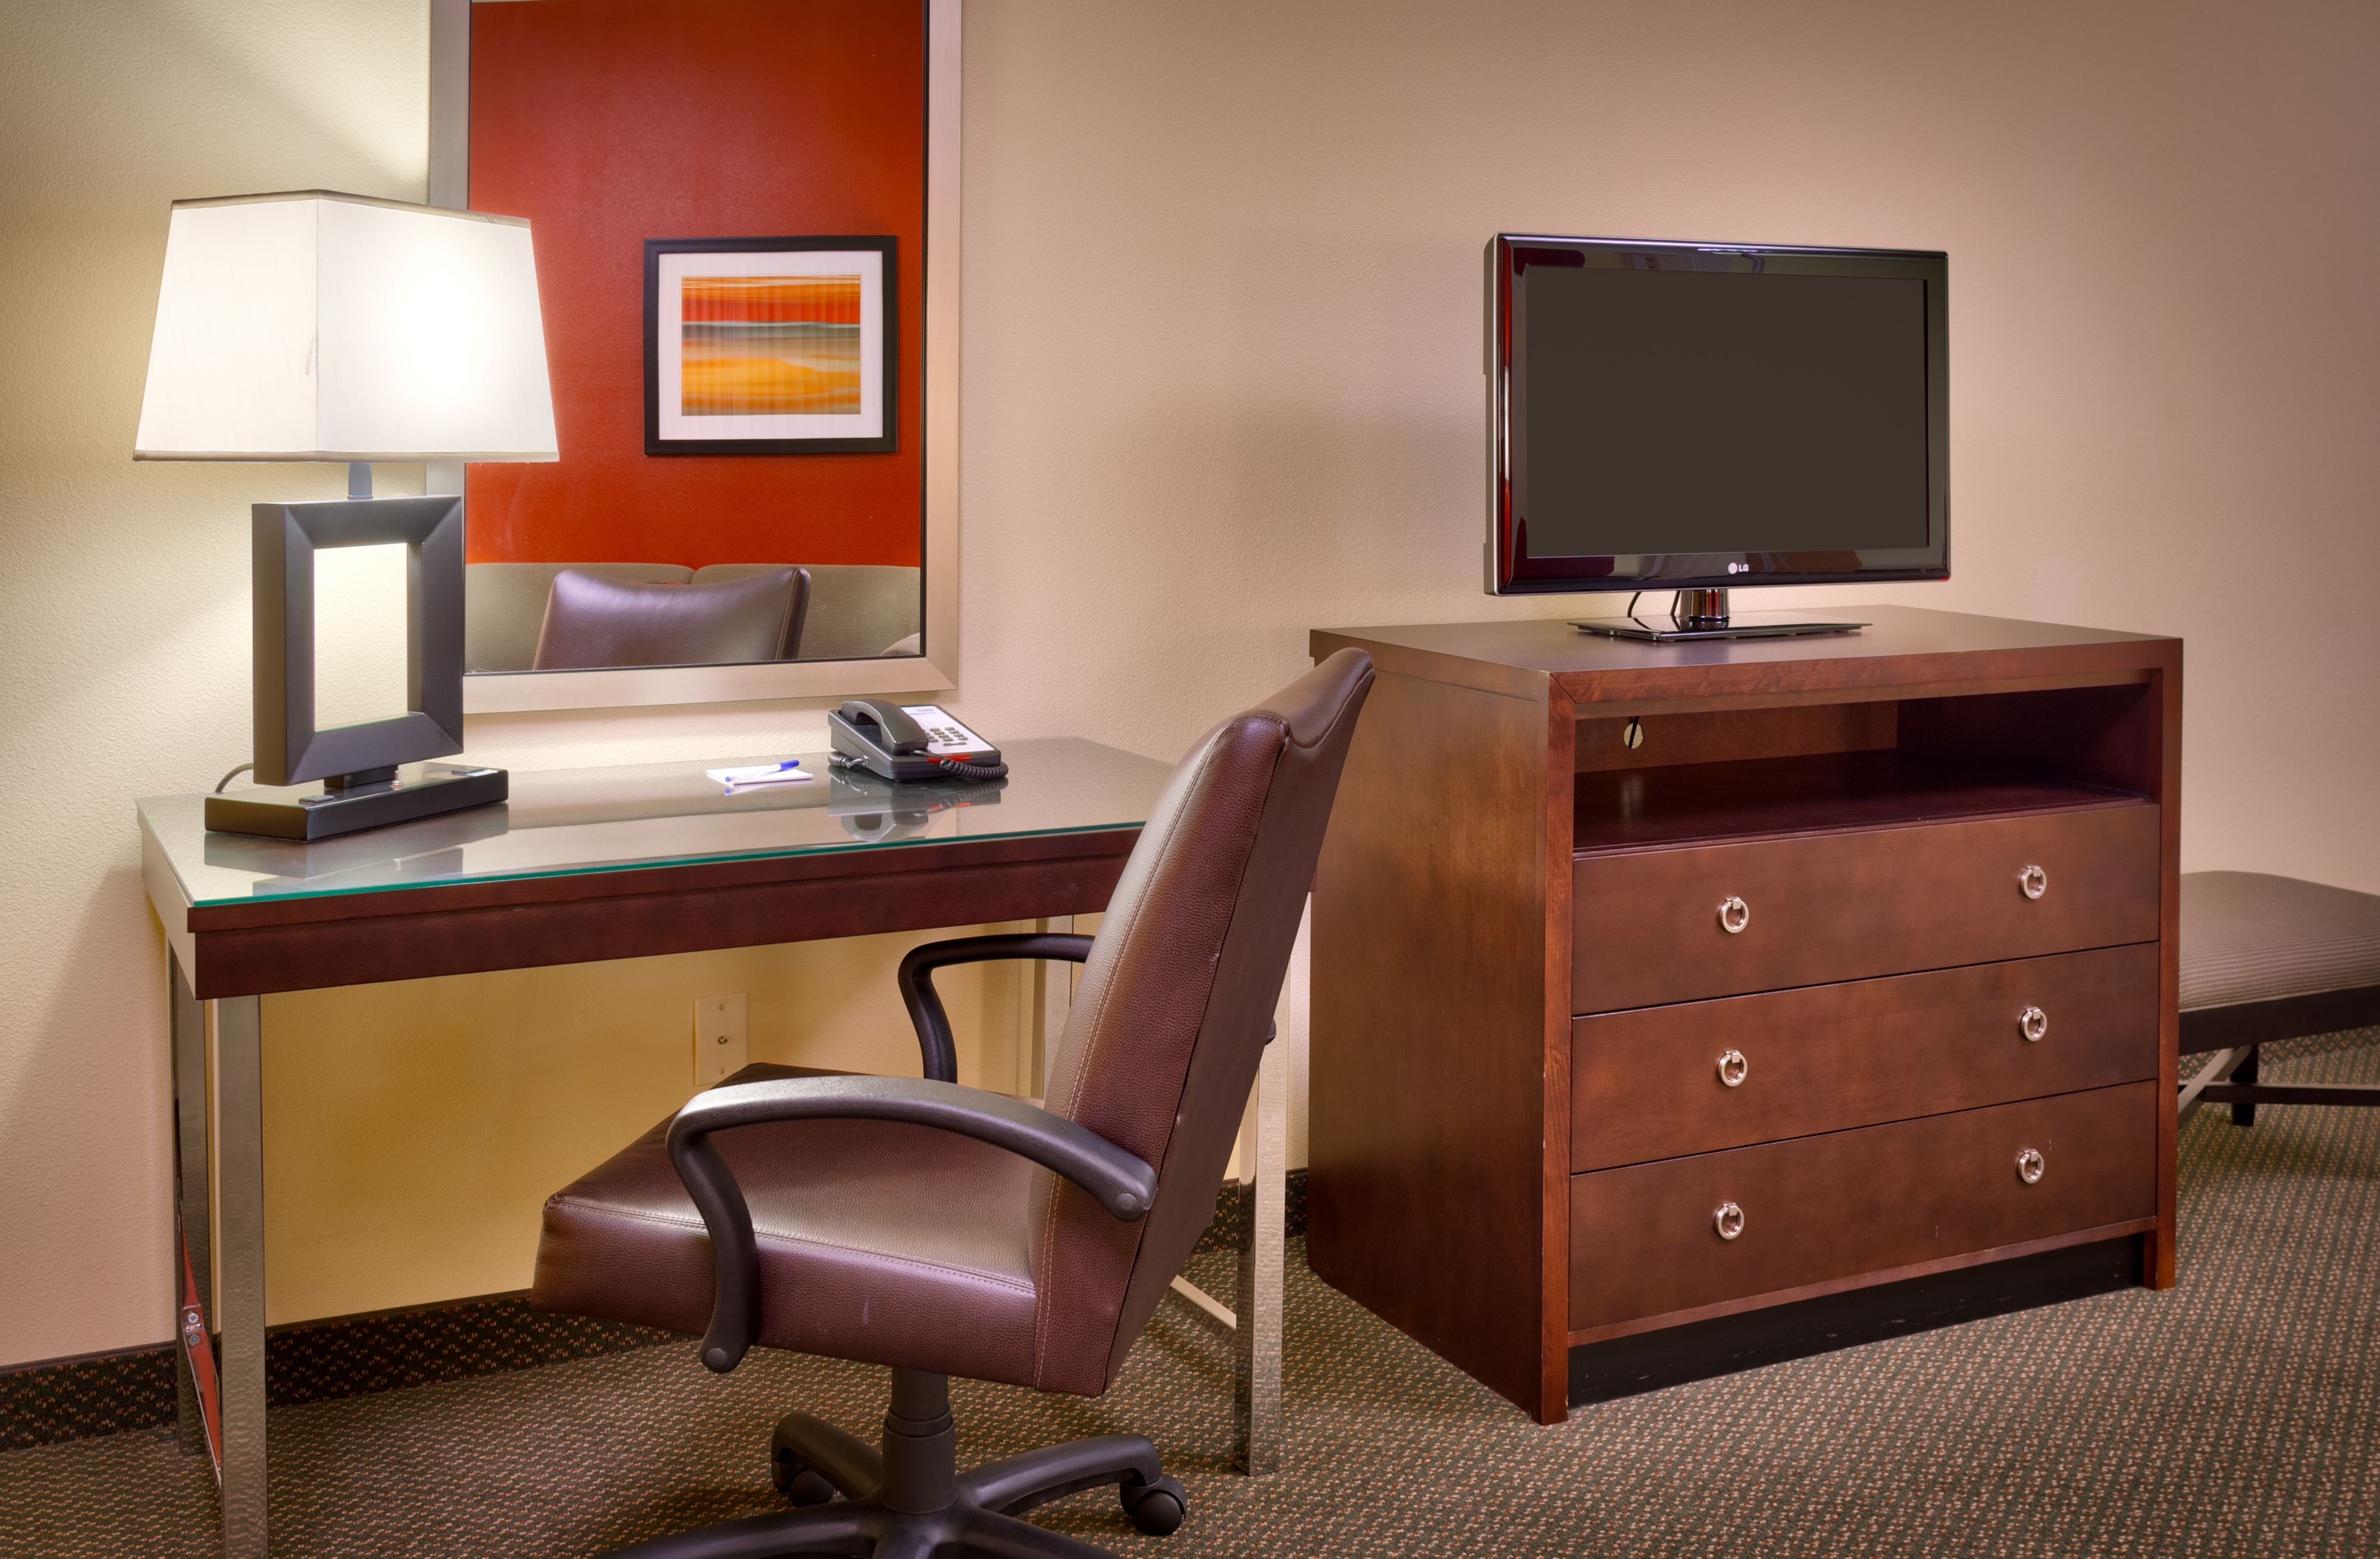 holiday-inn-express-and-suites-mesquite-3659762808-original.jpg